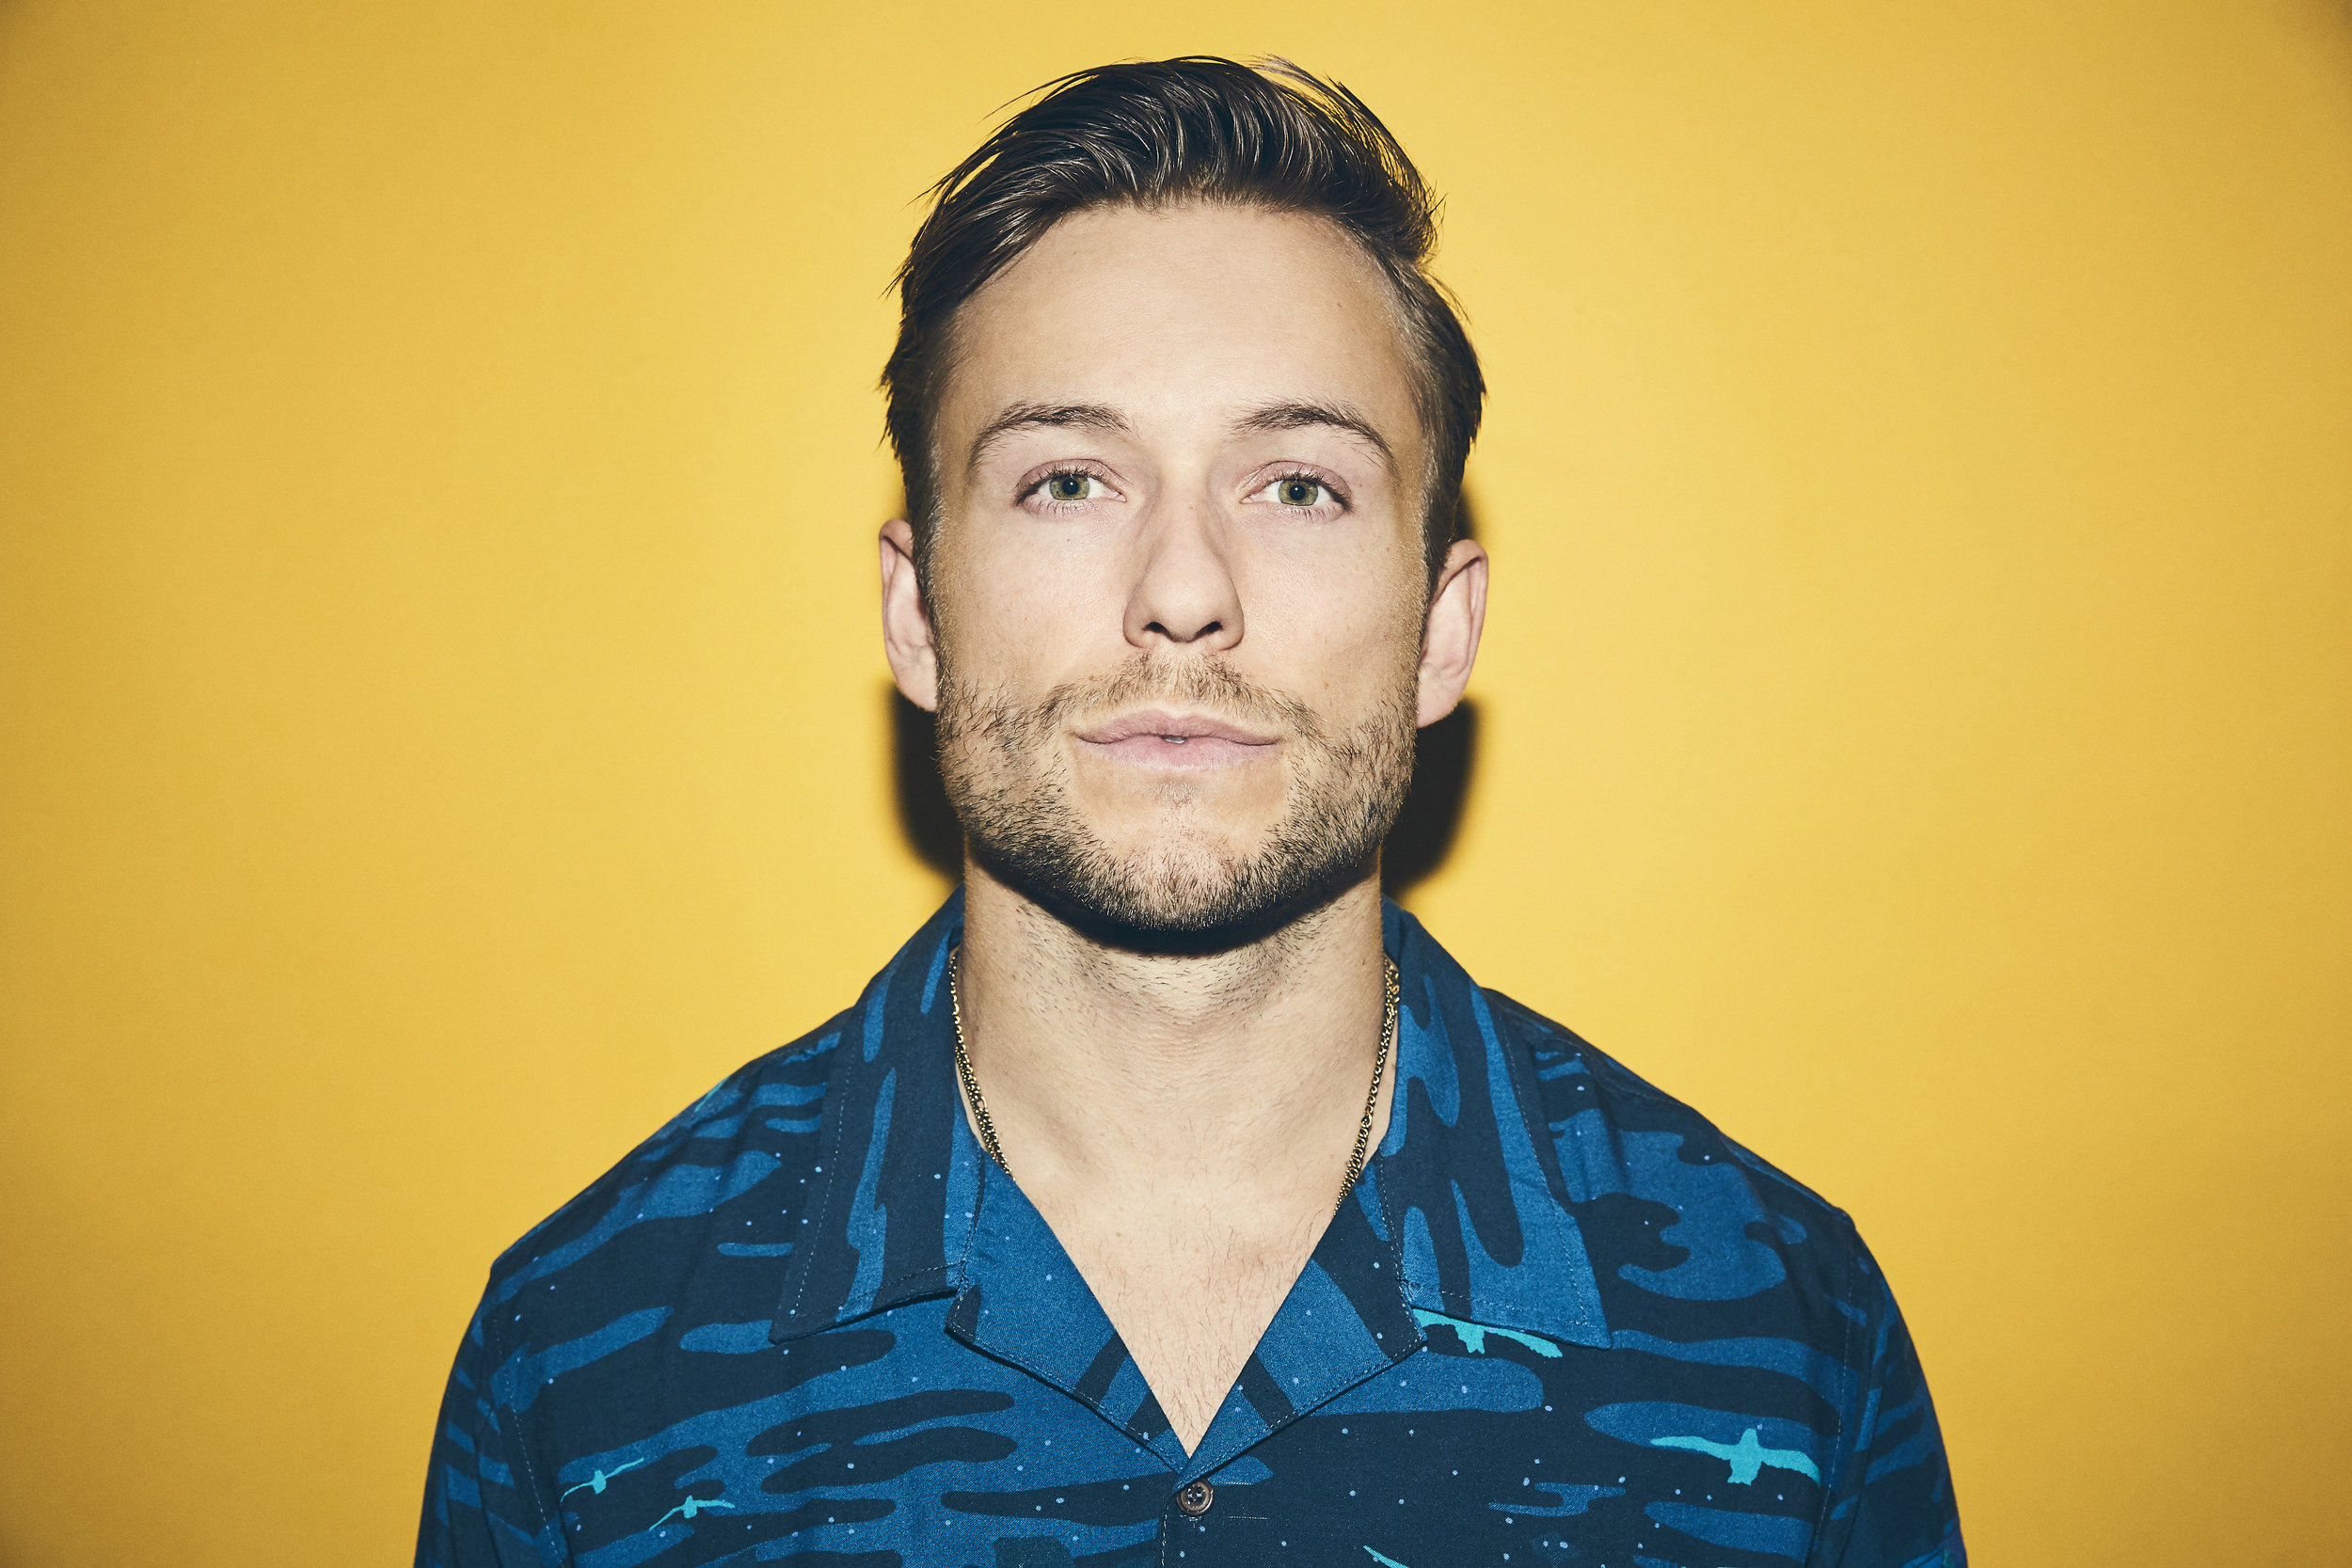 "Few acts have the innovative color and diverse repertoire of Party Favor, one of the fastest rising names in Dance Music. His edgy style helped pioneer the festival trap & twerk genre, exhilarating audiences and turning heads across the globe. Party Favor, AKA Dylan Ragland, has created chart topping original records such as ""Bap U"" (Mad Decent), ""Booty Loose"" (Mad Decent) and his most recent release ""Caskets"" (Mad Decent).  Party Favor's highly anticipated  Party and Destroy  EP released the summer of 2016 and included collaborations with Dillon Francis, Gucci Mane, Sean Kingston, Rich The Kid, Gent & Jawns and Georgia Ku. The EP received raving reviews in the industry debuting at #2 on iTunes Dance album charts. The EP's lead single ""Give It To Me Twice"" has garnished over 6 million plays on Spotify while the follow up ""In My Head"" hit #1 on US Dance Radio, #7 on Billboard's dance radio airplay charts and was the #1 most requested song for 5 weeks in a row on BPM (Sirius XM).  Party Favor has already racked up a total of over 35 million streams on Spotify and 27 million plays on Soundcloud and the numbers are continuously growing. His infectious music has created massive demand across the globe, leading to consistent headlining tours around the world at some of the best and most iconic venues. His success in the states and abroad has lead to licensing deals with major companies such as; T-mobile, Mountain Dew, Truth Anti Smoking Campaign, Samsung and more. His music has also been featured in blockbuster movies such as  Vacation, How To Be Single, Neighbors 2 and hit televisions shows Ballers, Silicon Valley, NCIS Los Angeles, and NBC's Superstore .  Party Favor won't slow down anytime soon, as he is embarking on his first world tour in 2017 and has multiple collaborations in the works with some of the most exciting names in music."